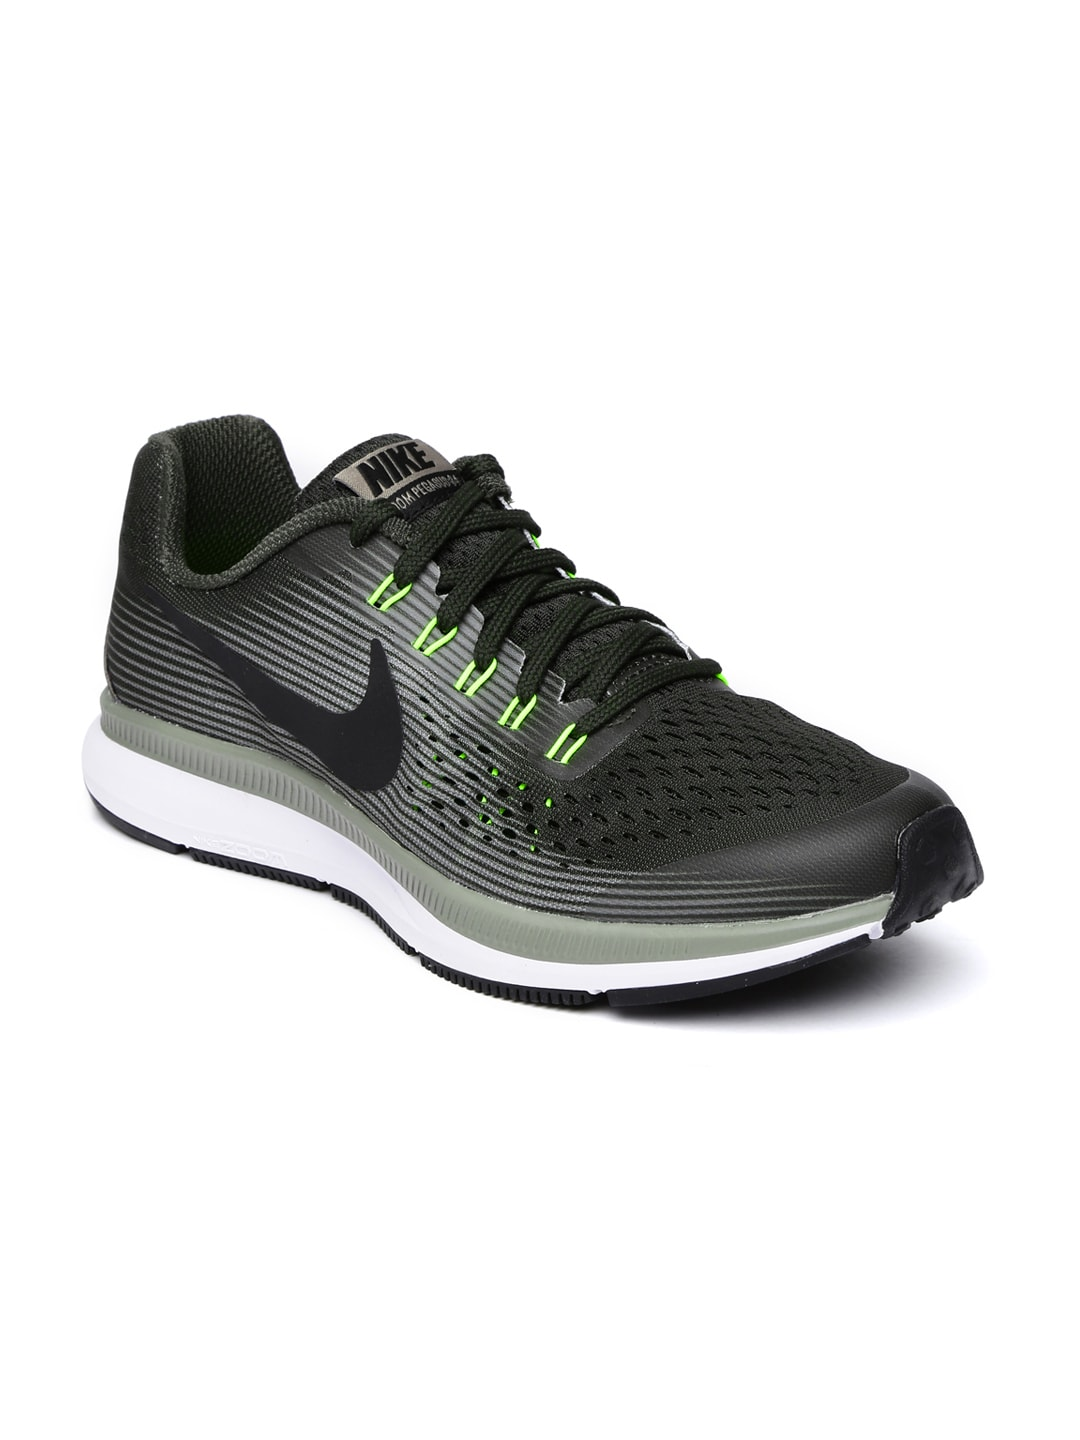 Nike Olive Shoes - Buy Nike Olive Shoes online in India 5ef1ae200